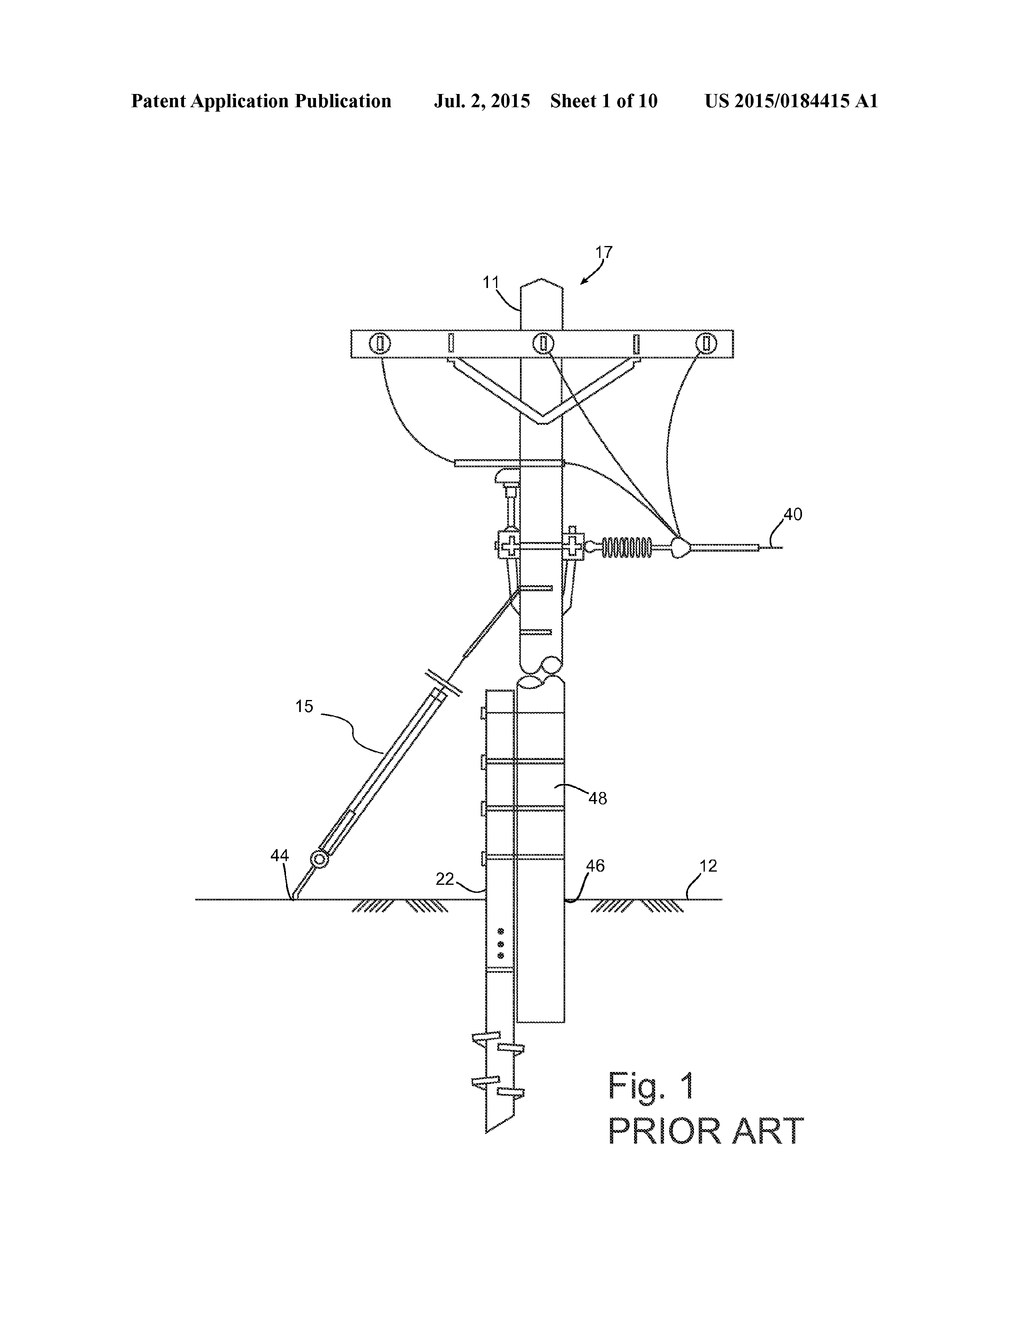 20150184415_02 methods and apparatuses of supporting and bracing a utility pole